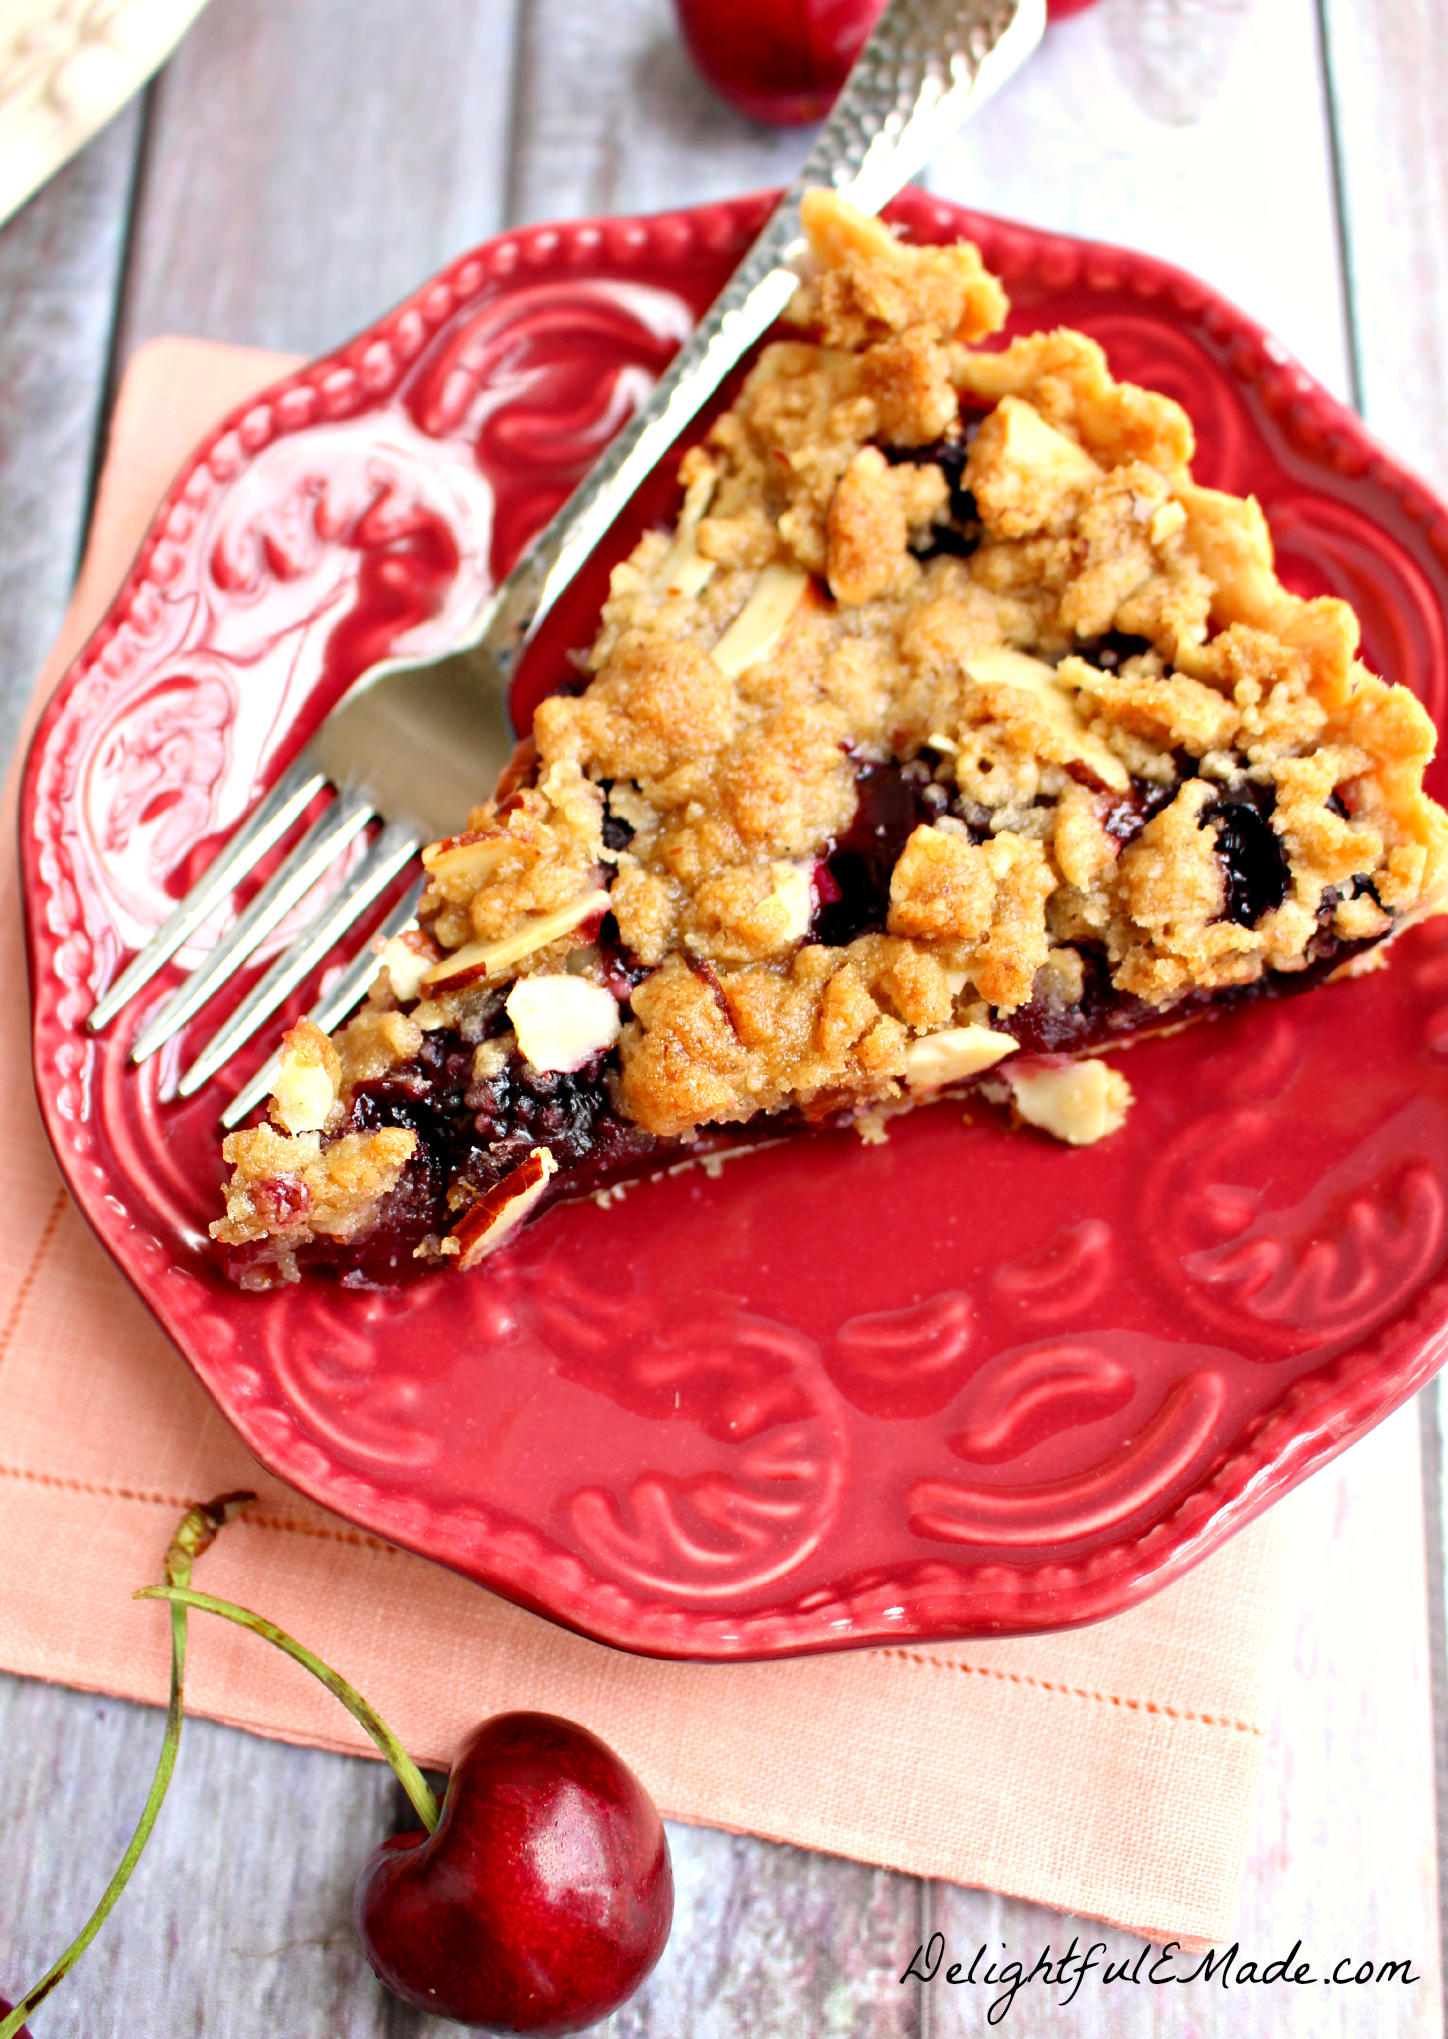 tart is filled with the flavors of summer! Made with fresh cherries ...